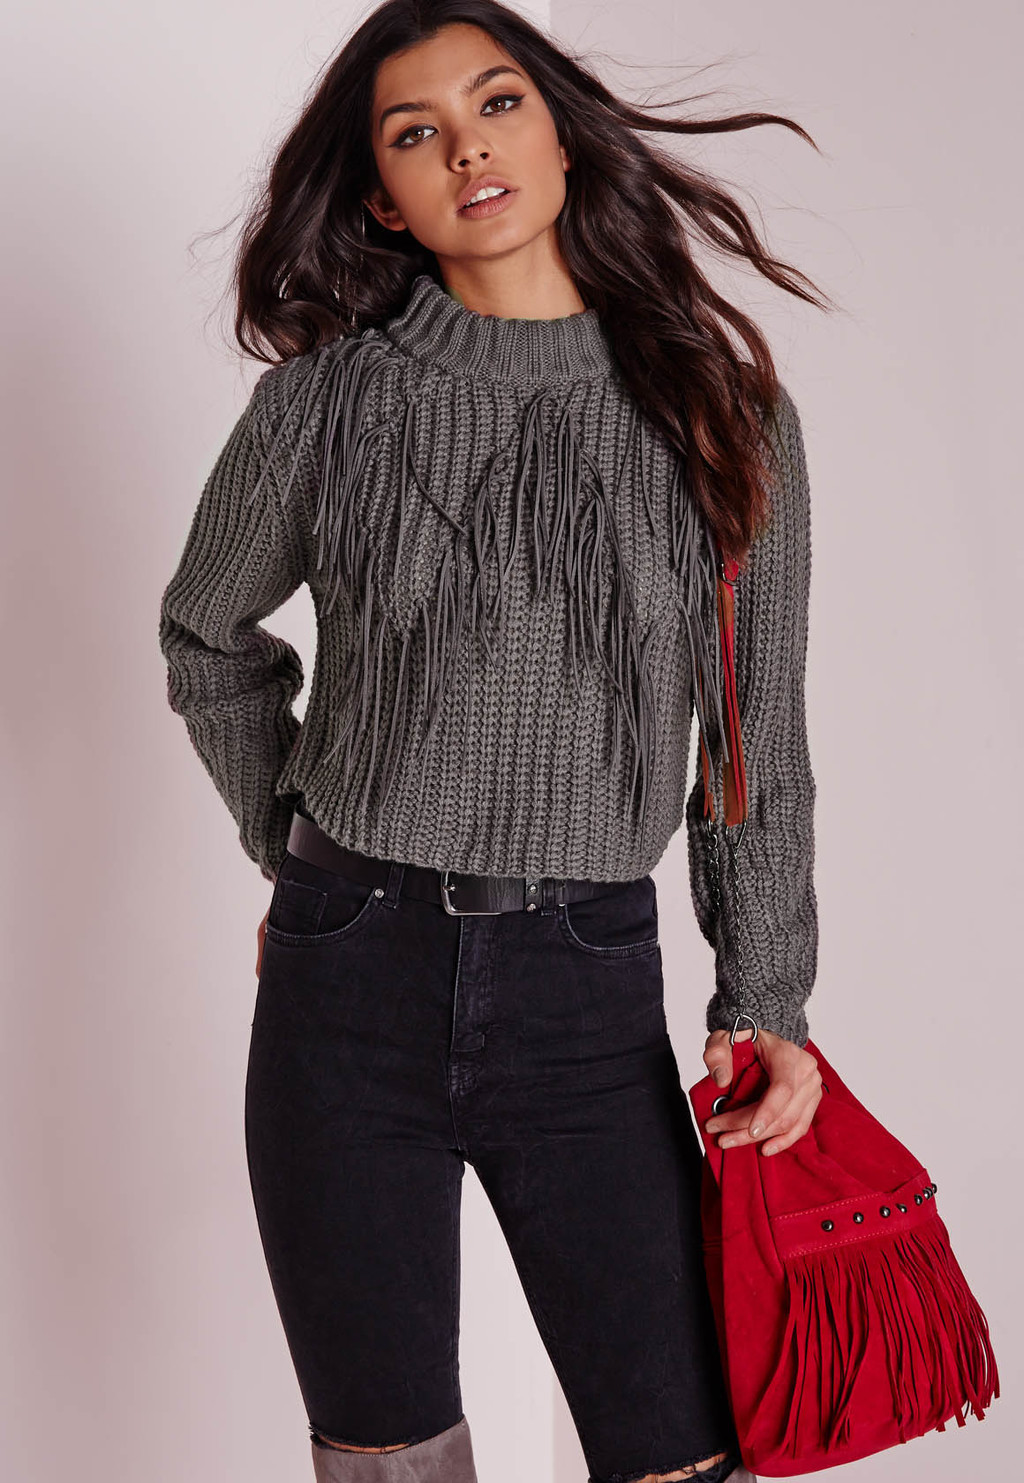 Faux Suede Fringed Crop Jumper Grey, Grey - pattern: plain; neckline: high neck; style: standard; predominant colour: charcoal; occasions: casual, creative work; length: standard; fibres: acrylic - mix; fit: standard fit; sleeve length: long sleeve; sleeve style: standard; texture group: knits/crochet; pattern type: knitted - other; embellishment: fringing; season: a/w 2015; wardrobe: highlight; embellishment location: bust